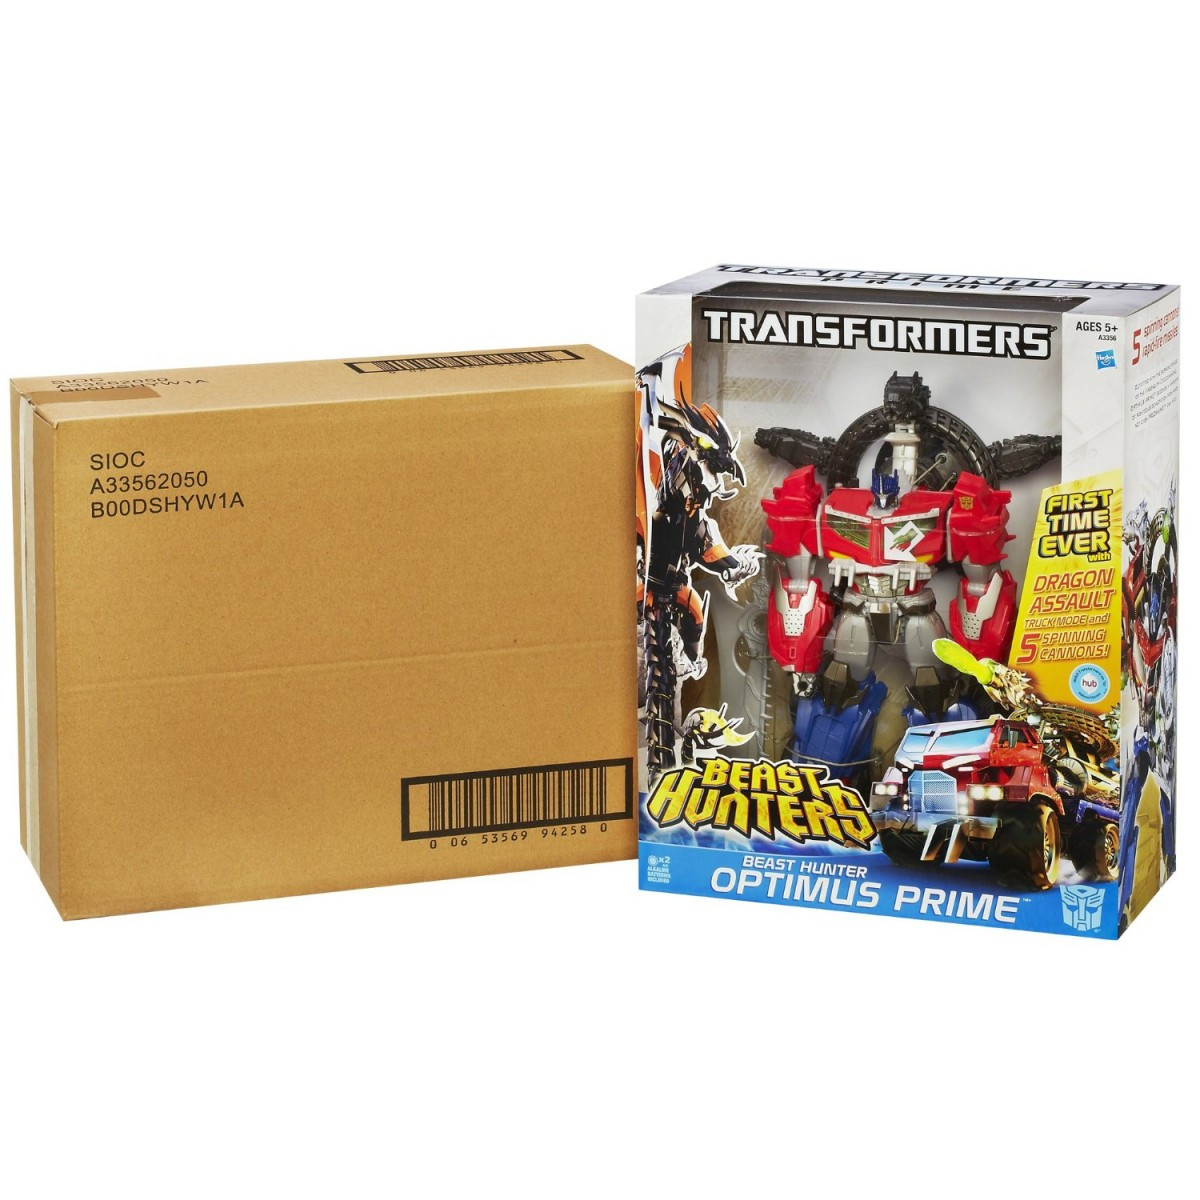 Transformers News: Beast Hunter Optimus Prime (Supreme/Ultimate Class) Available @ Amazon For $18.00!